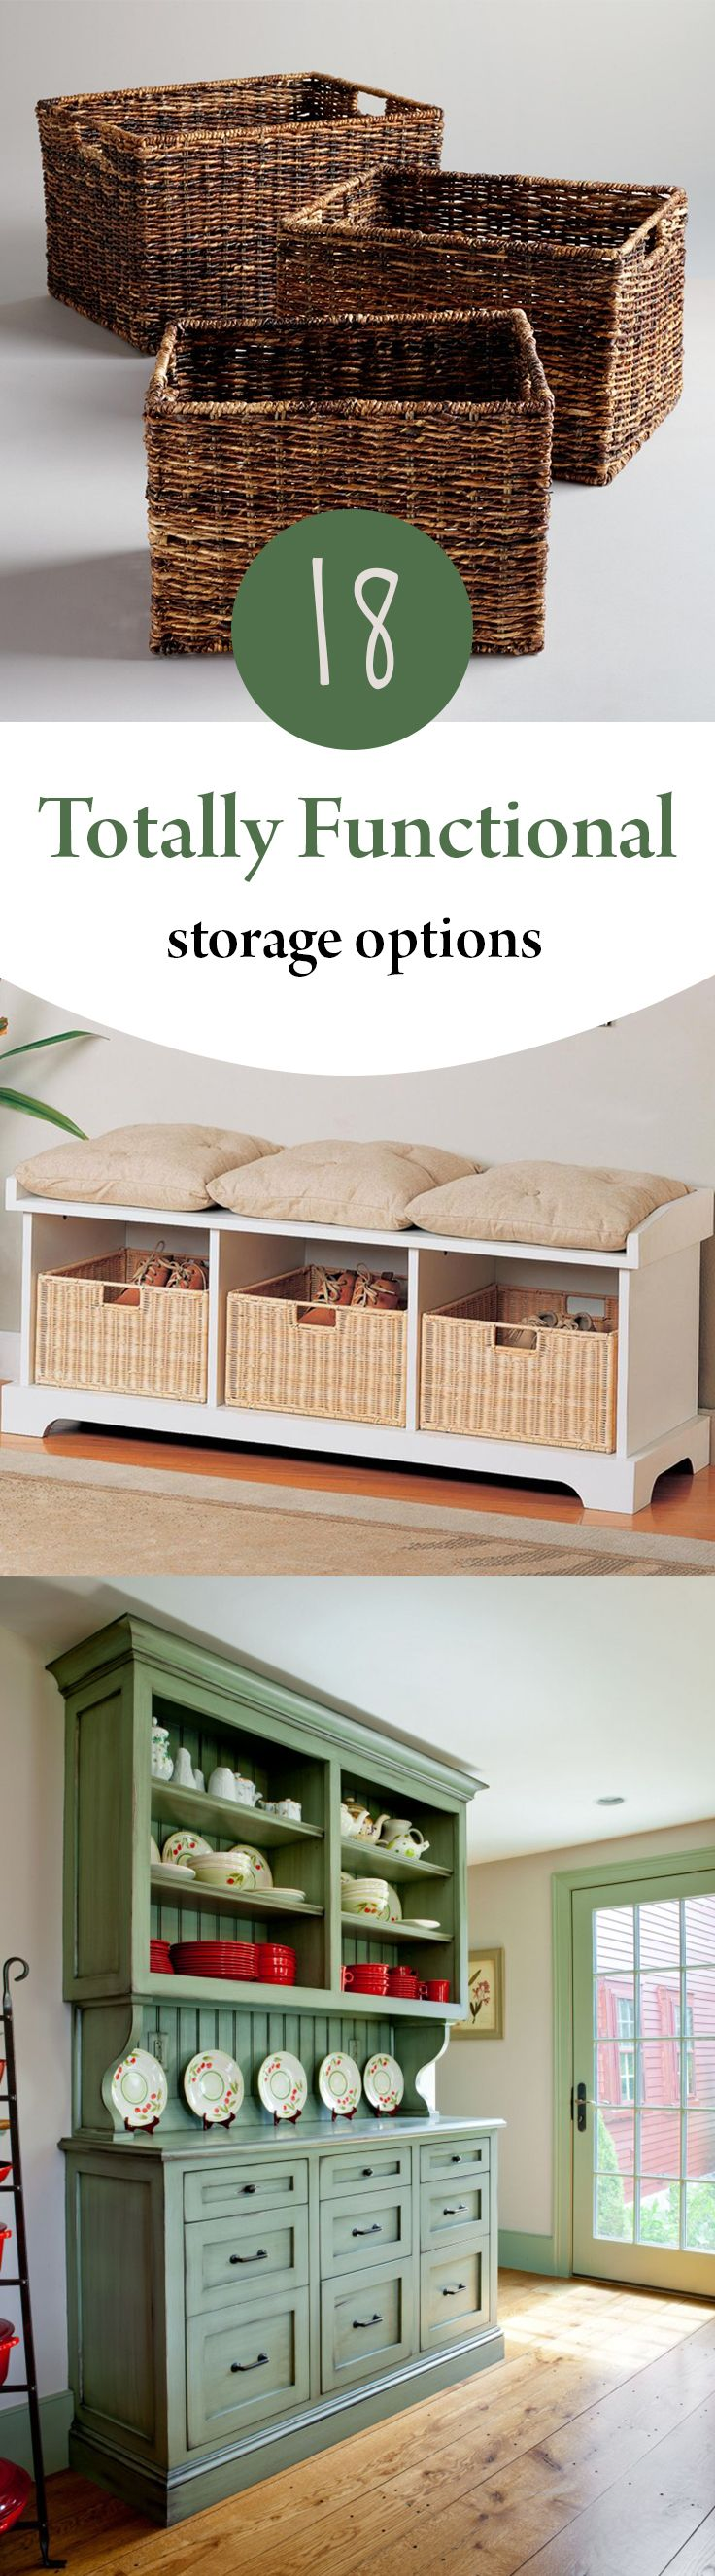 best organization u cleaning images on pinterest households